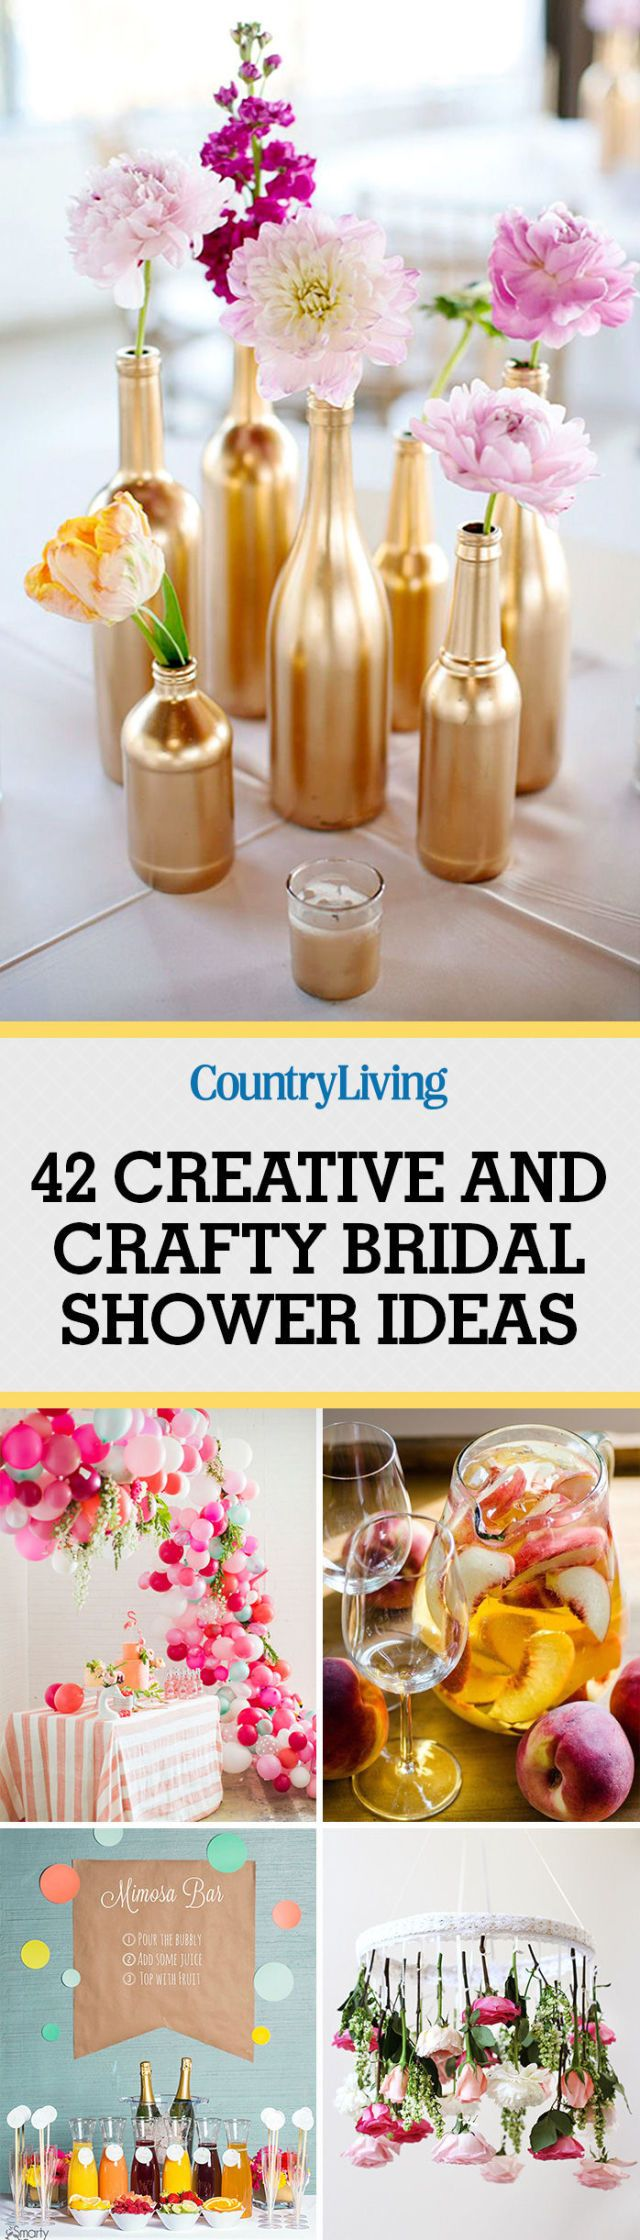 Don't forget to pin these crafty bridal shower ideas!